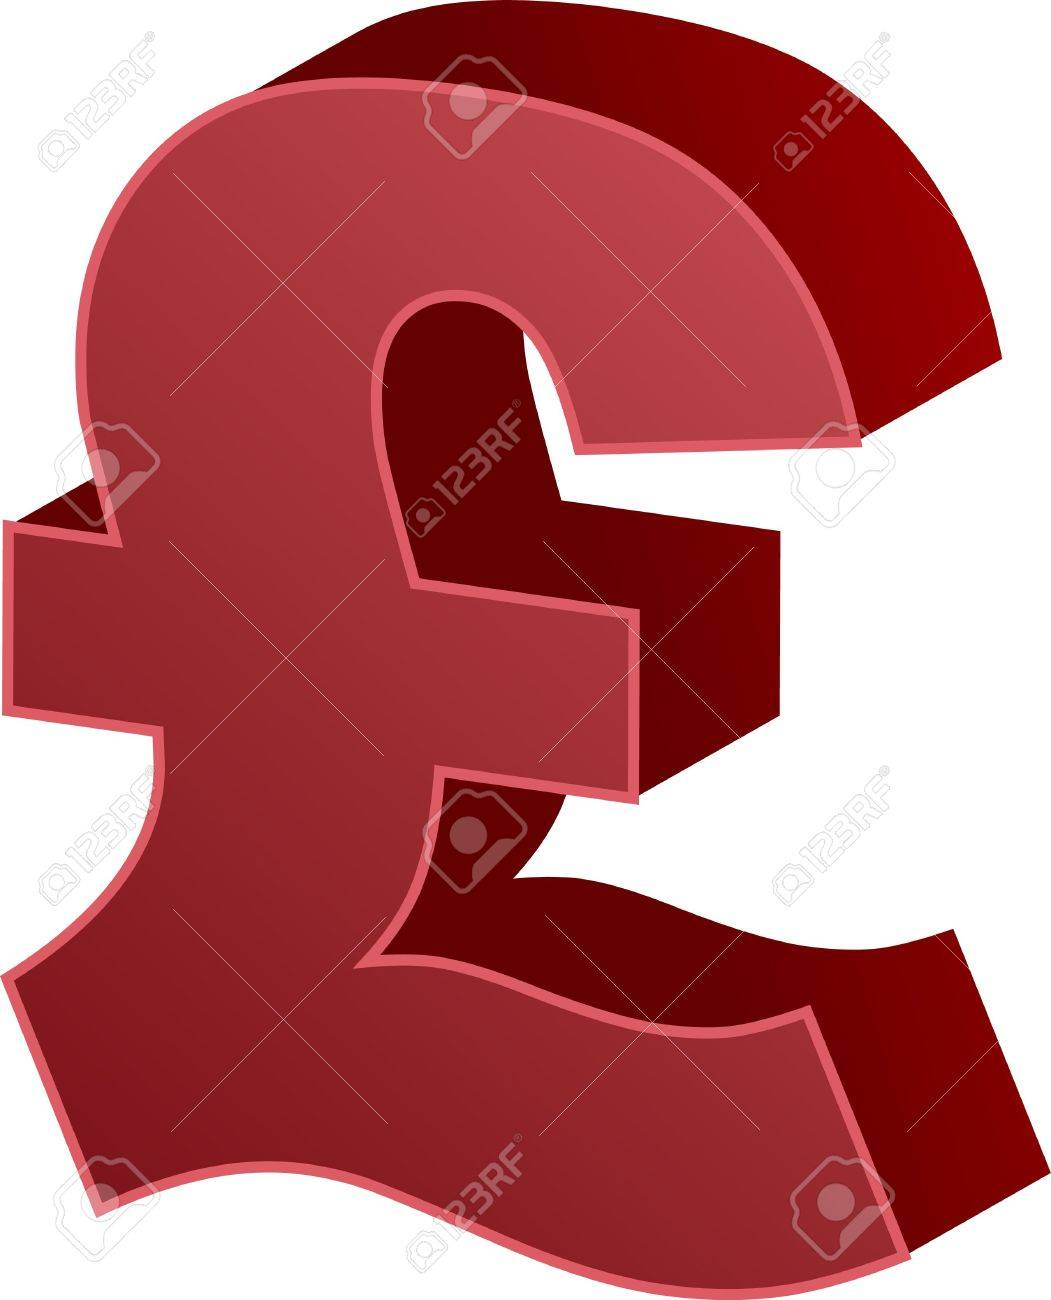 United Kingdom Pound Sterling Currency Symbol Isometric Illustration